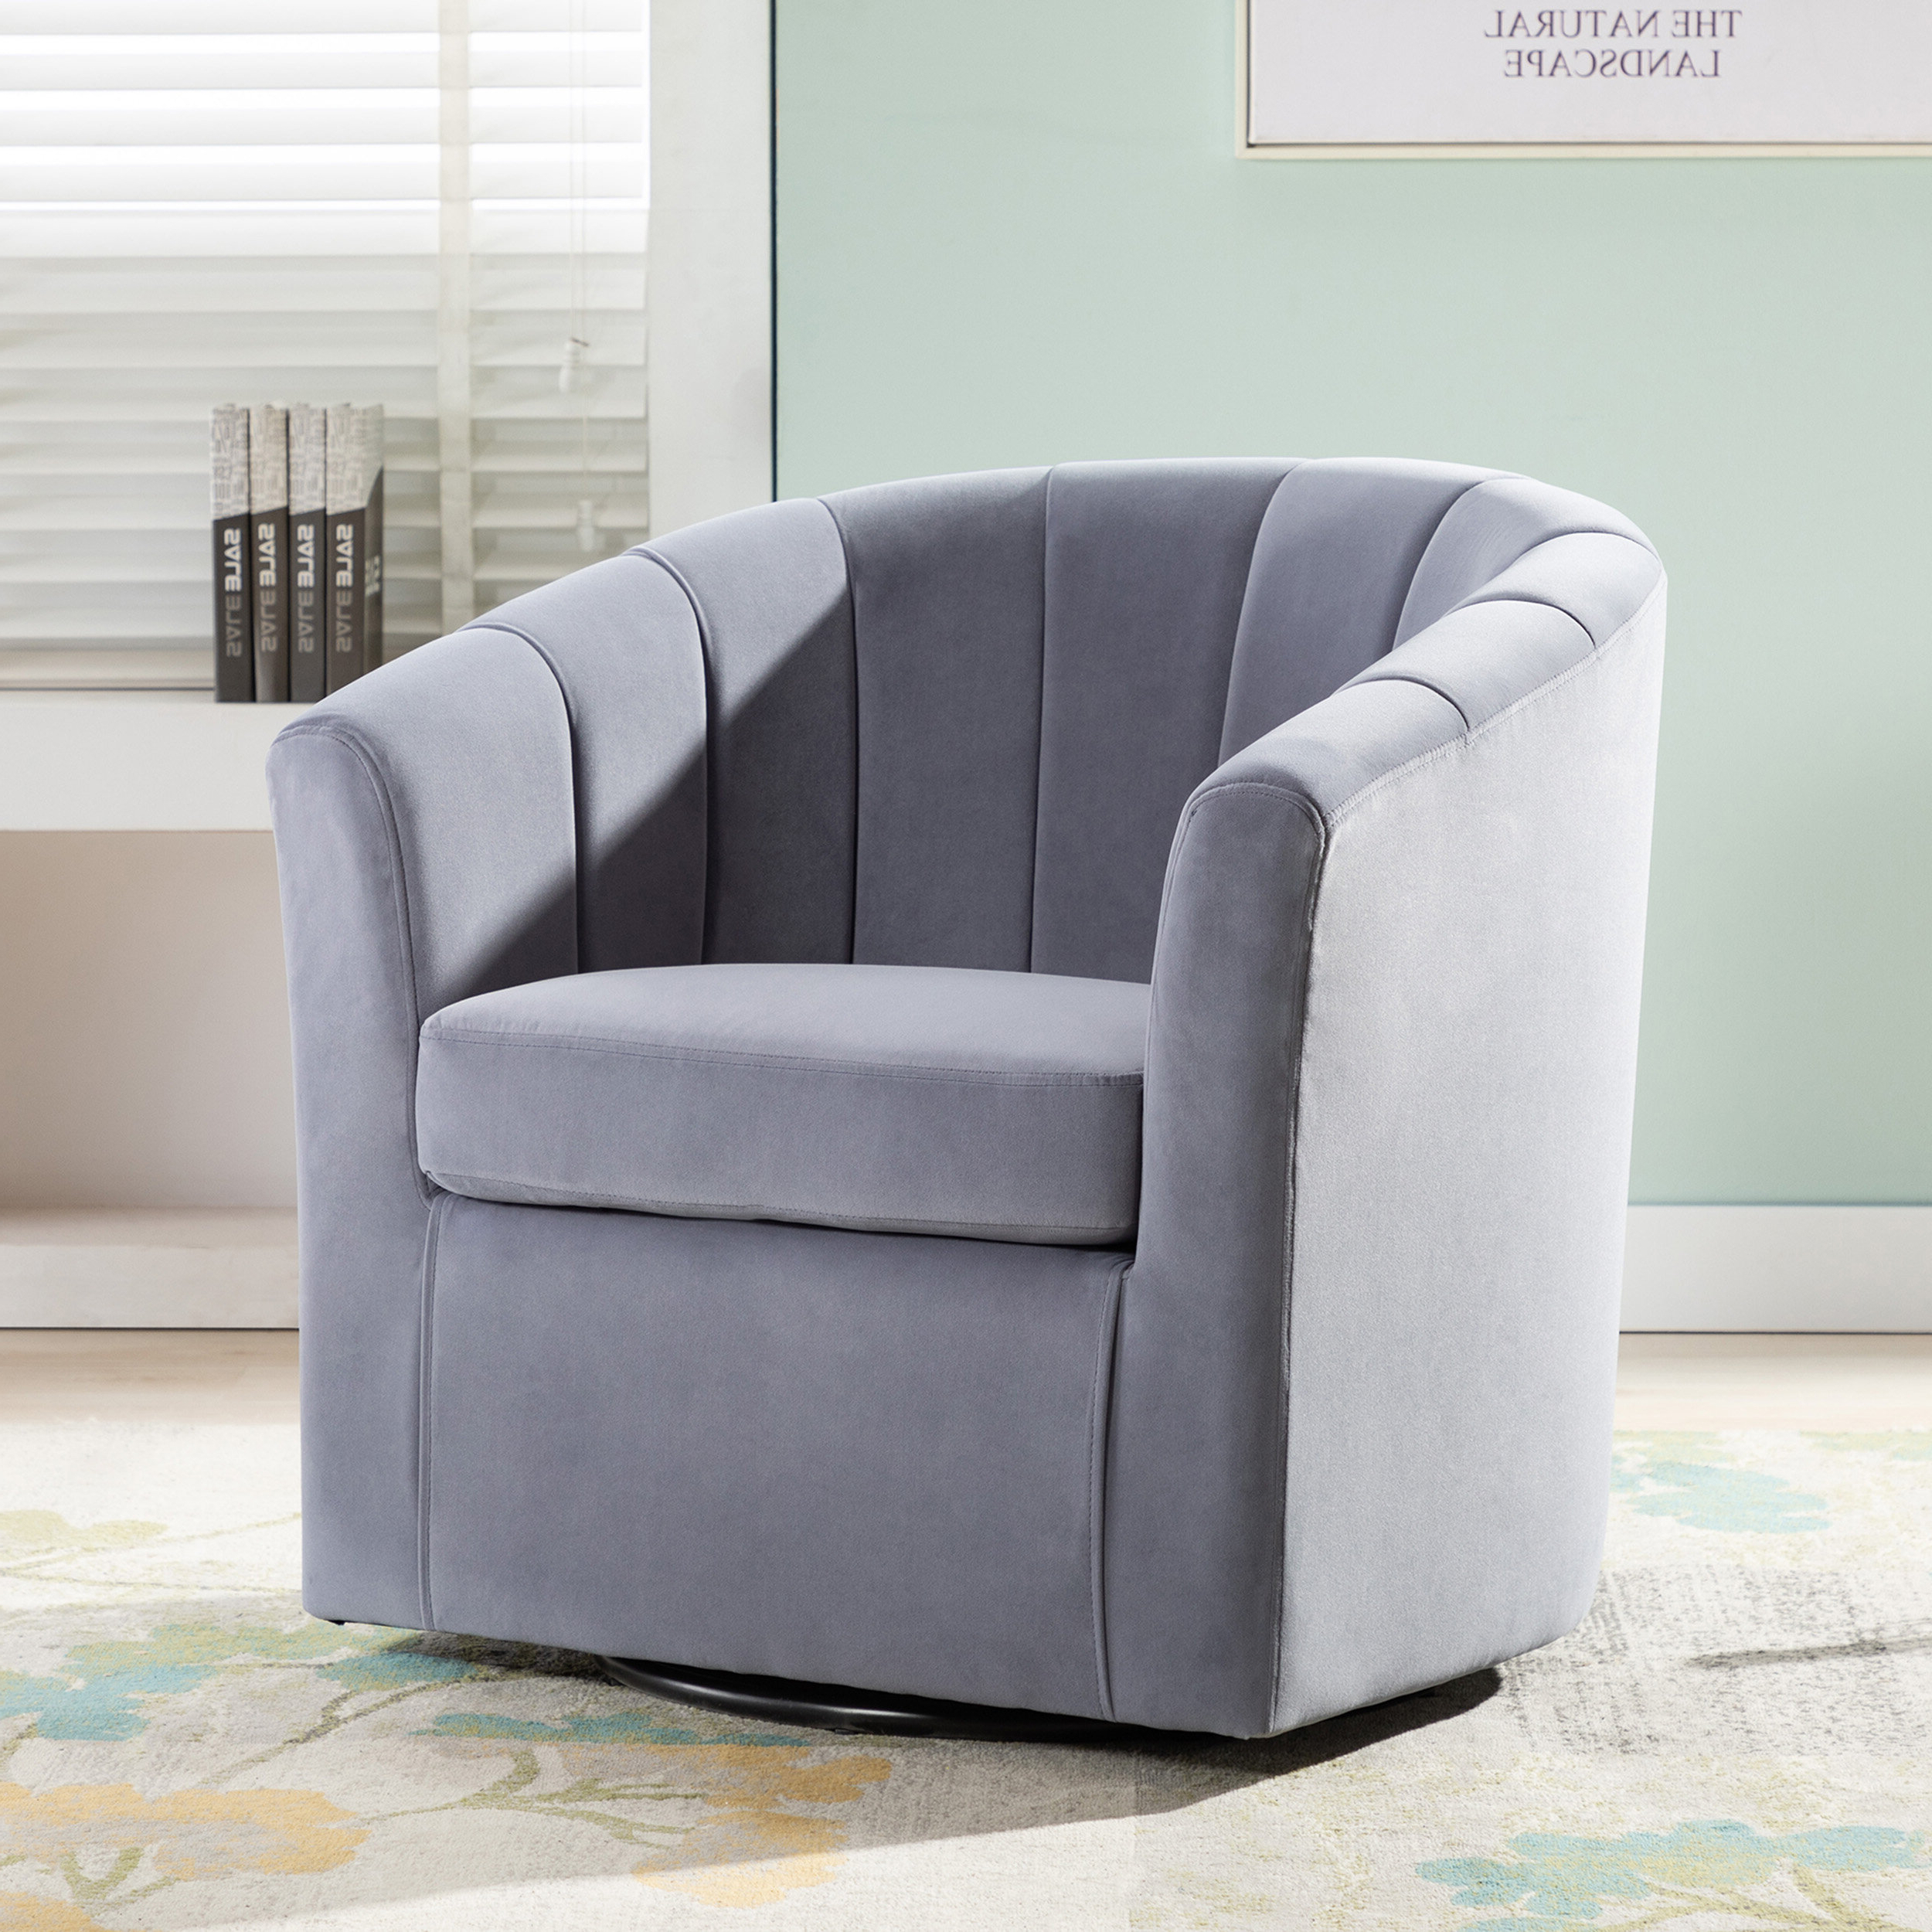 Most Recent Bronaugh Barrel Chairs Within Barrentine Swivel Barrel Chair (View 10 of 20)